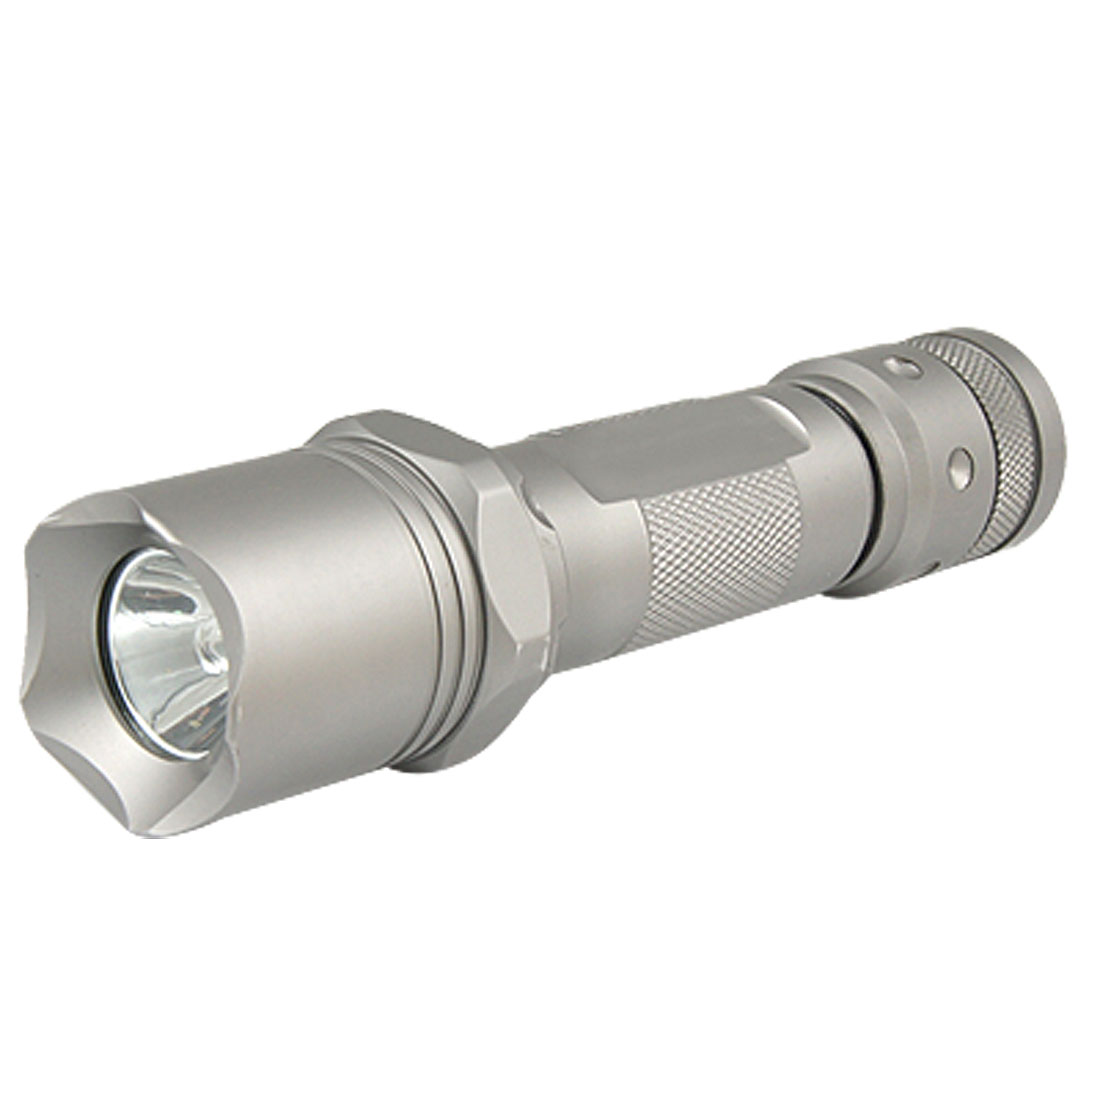 Compass Button Switch Tail White Light LED Flashlight Torch for Camping